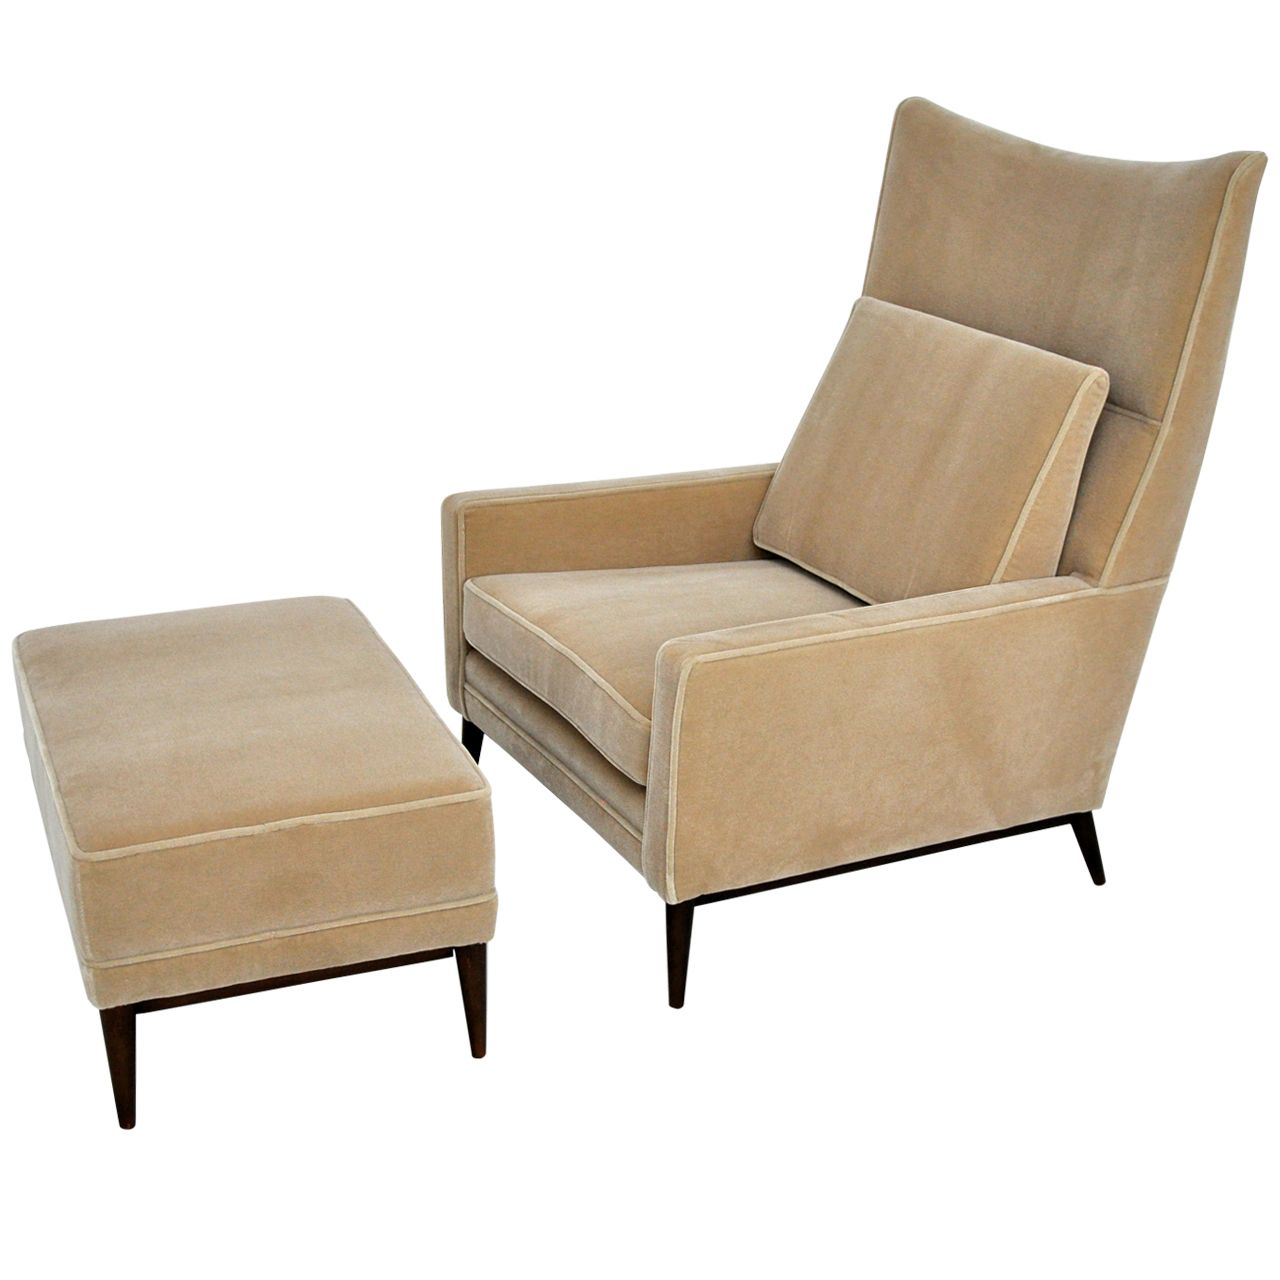 Pin By Jan E On Furniture Chairs Lounge Amp Occasional